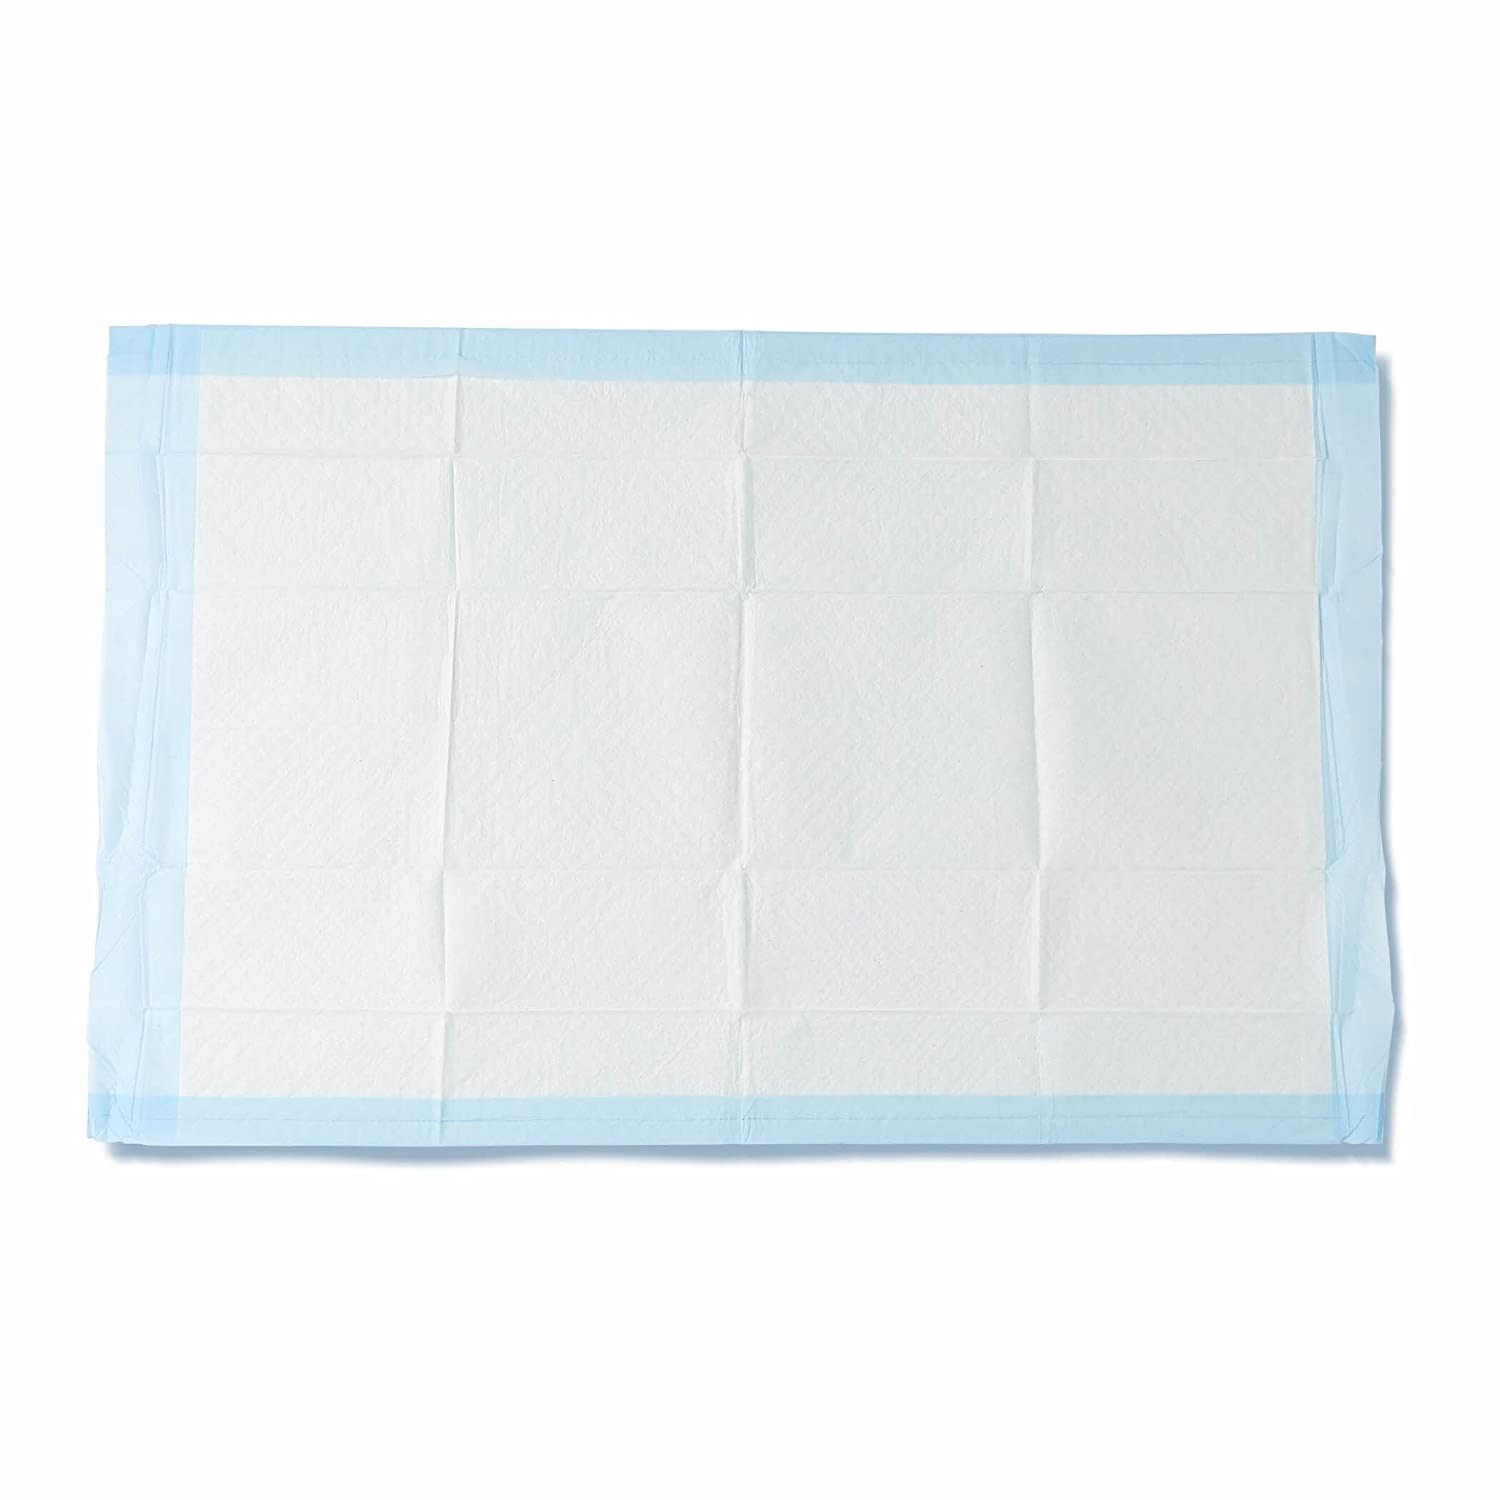 """Medline Quilted Basic Disposable Blue Underpad, 23"""" x 36"""" for incontinence, Furniture Protection or Pet Pads (Pack of 150)"""